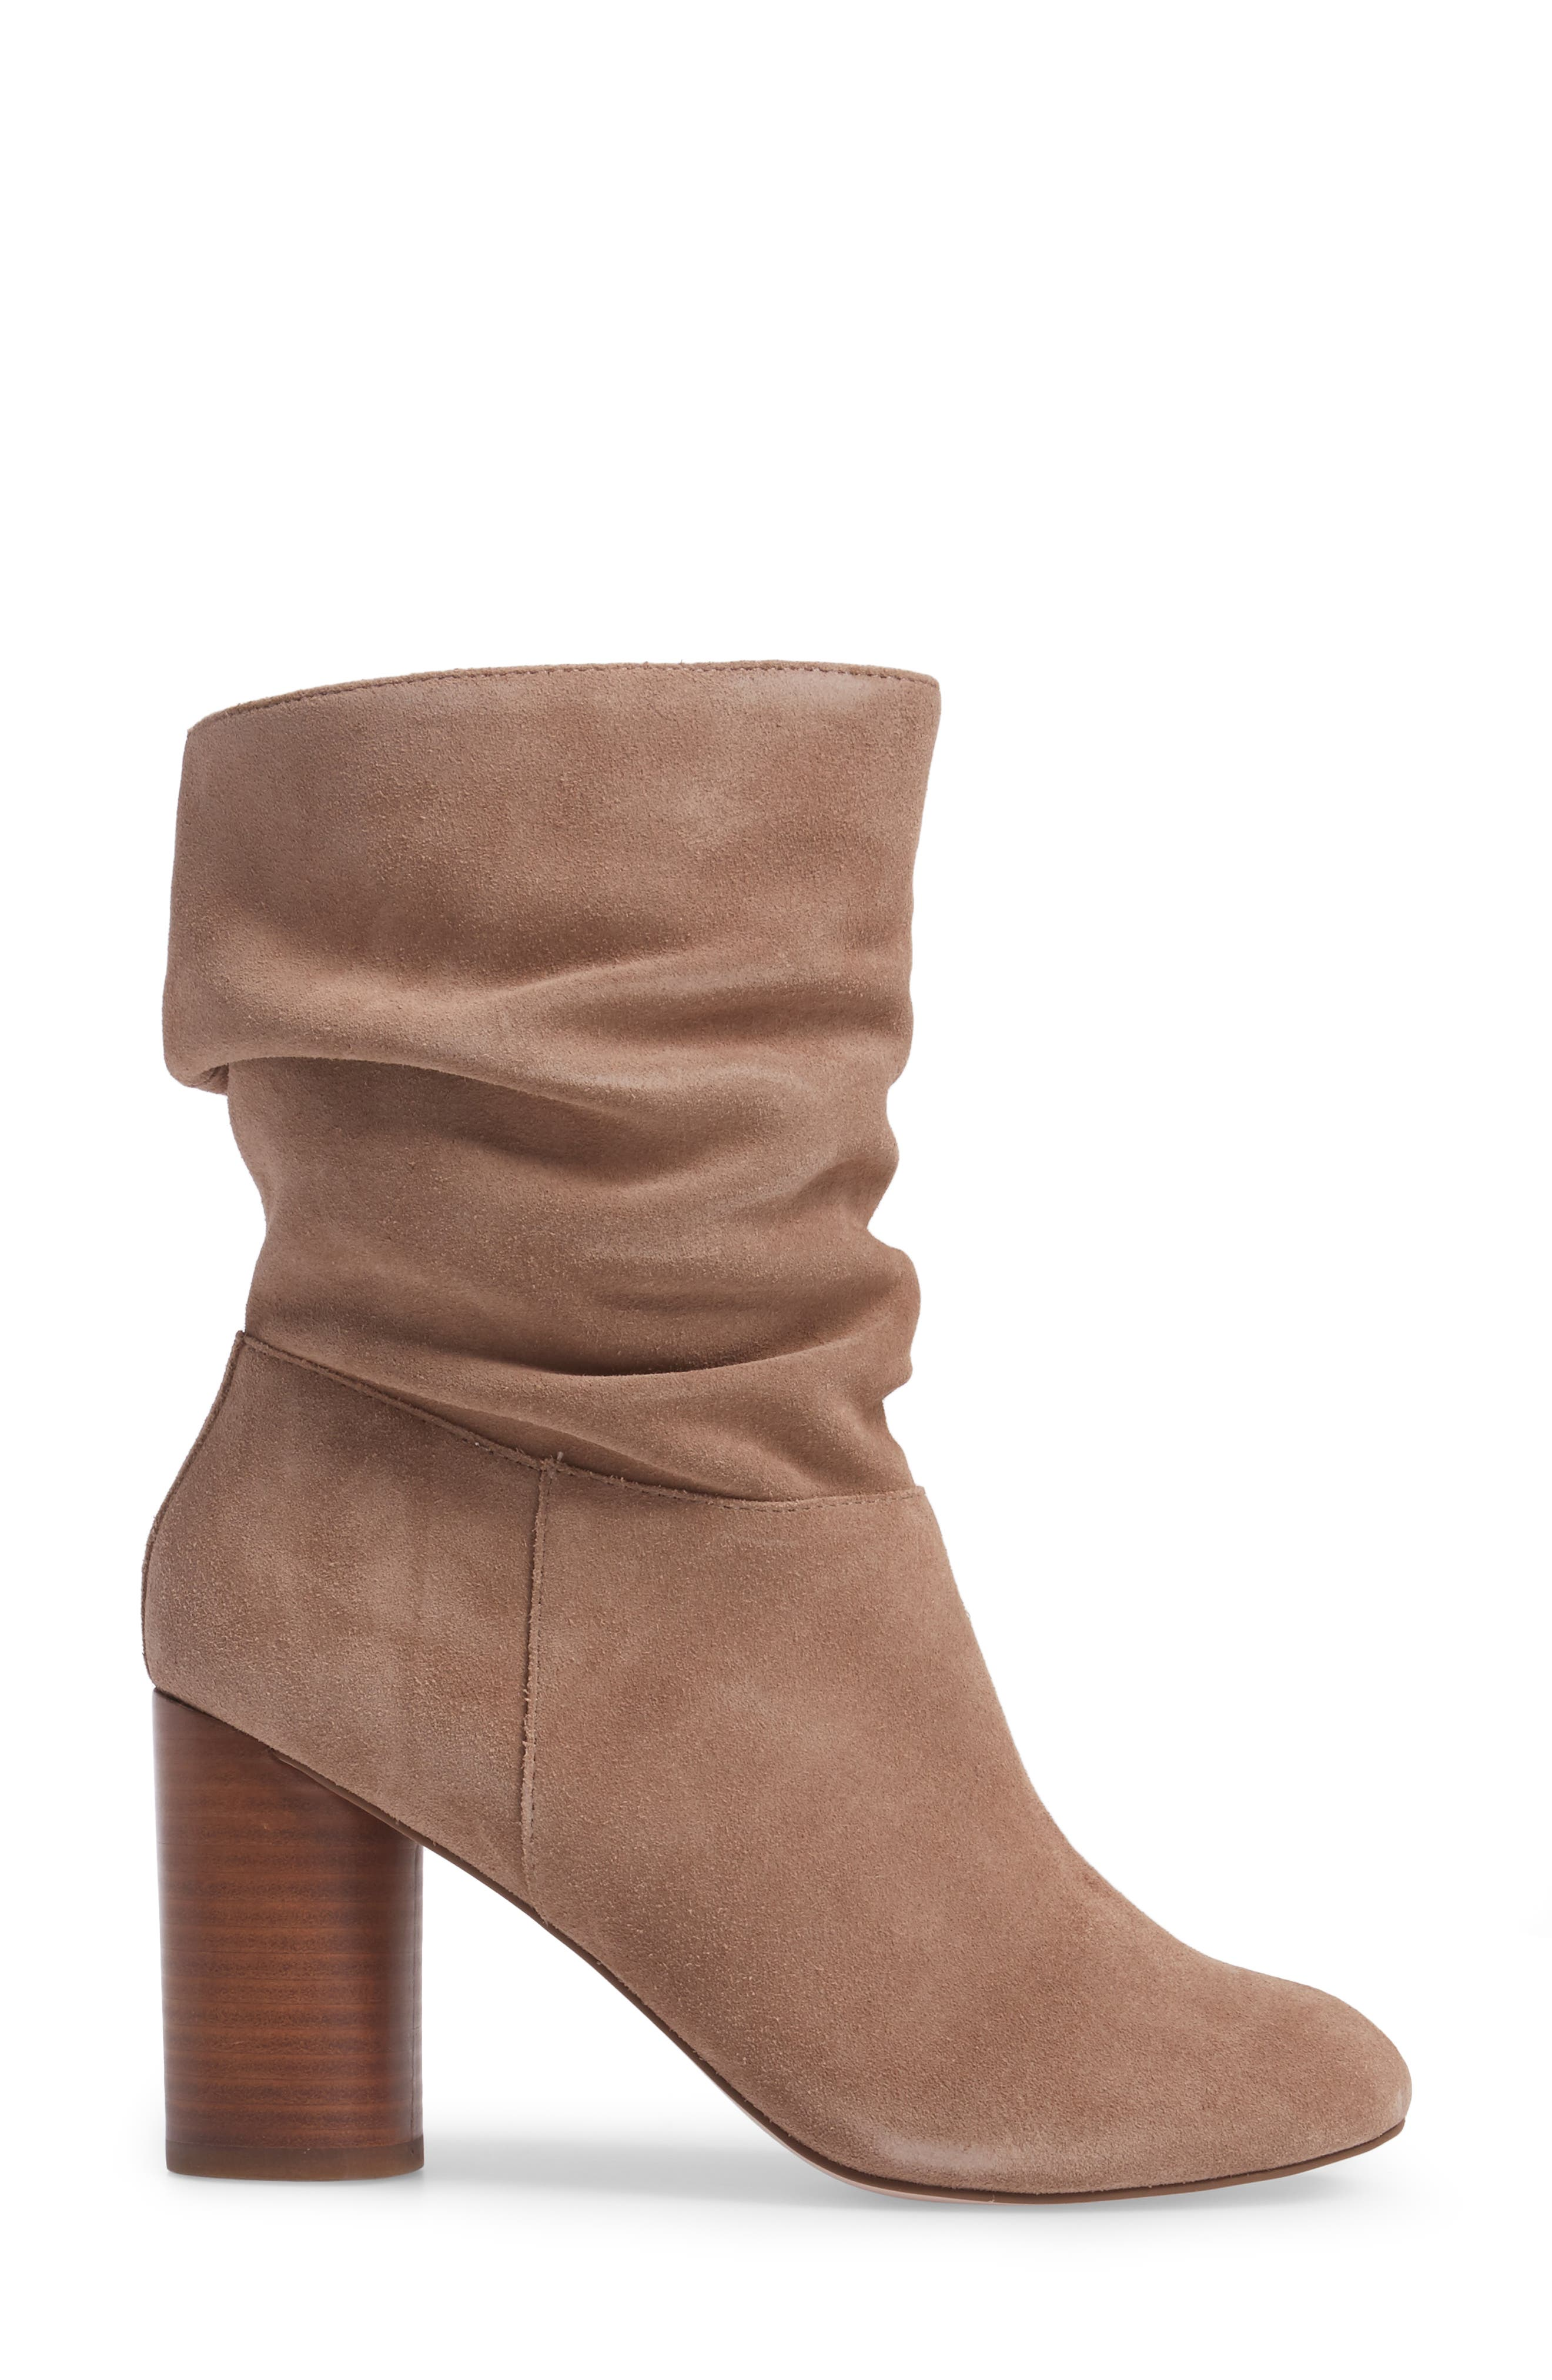 Belen Slouchy Bootie,                             Alternate thumbnail 3, color,                             Night Taupe